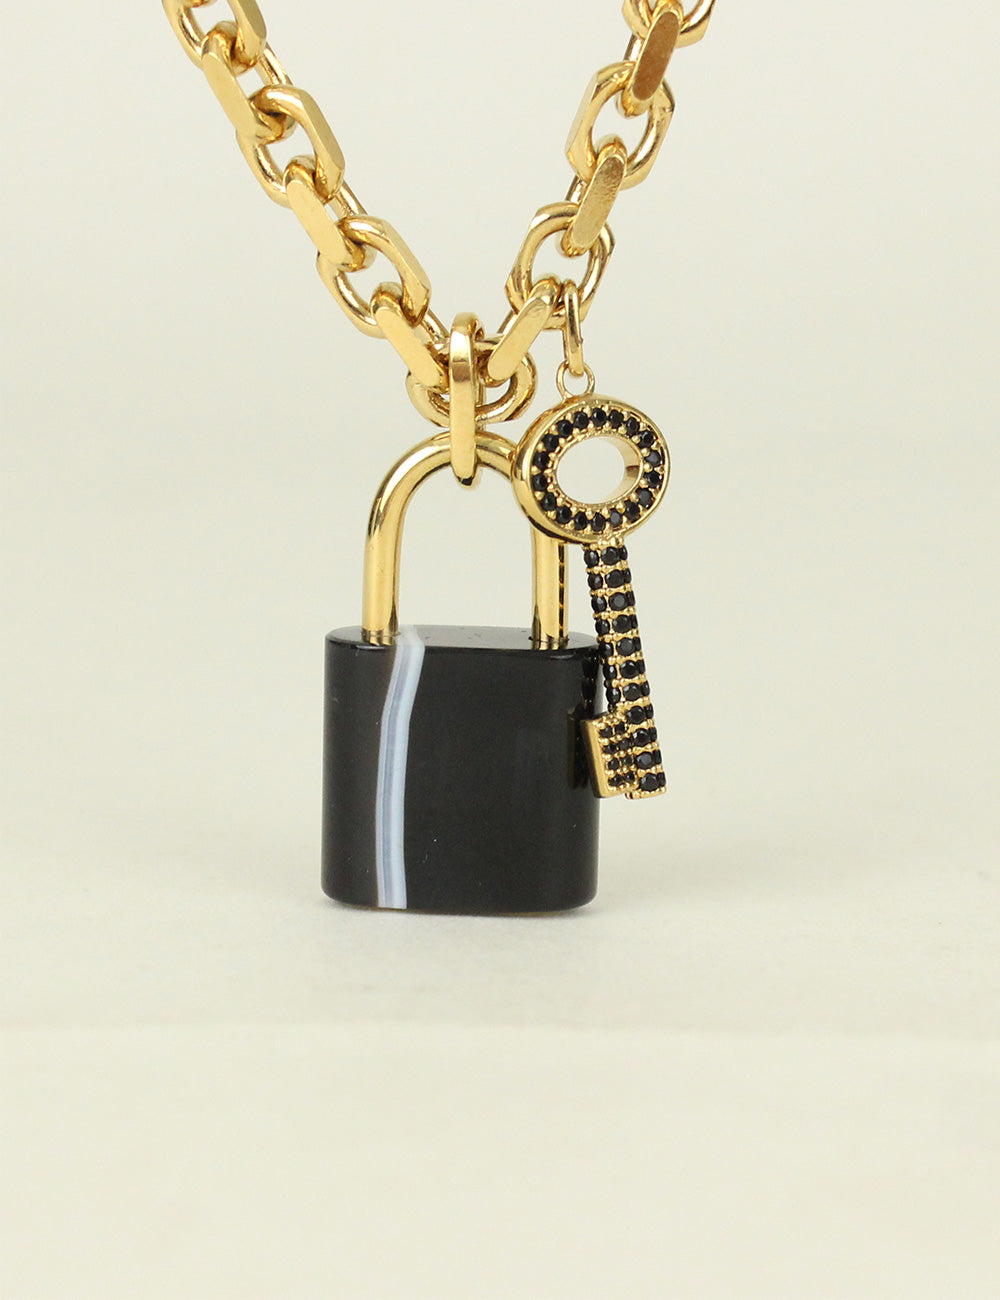 Louis Vuitton <br> Key & Padlock Charm Necklace